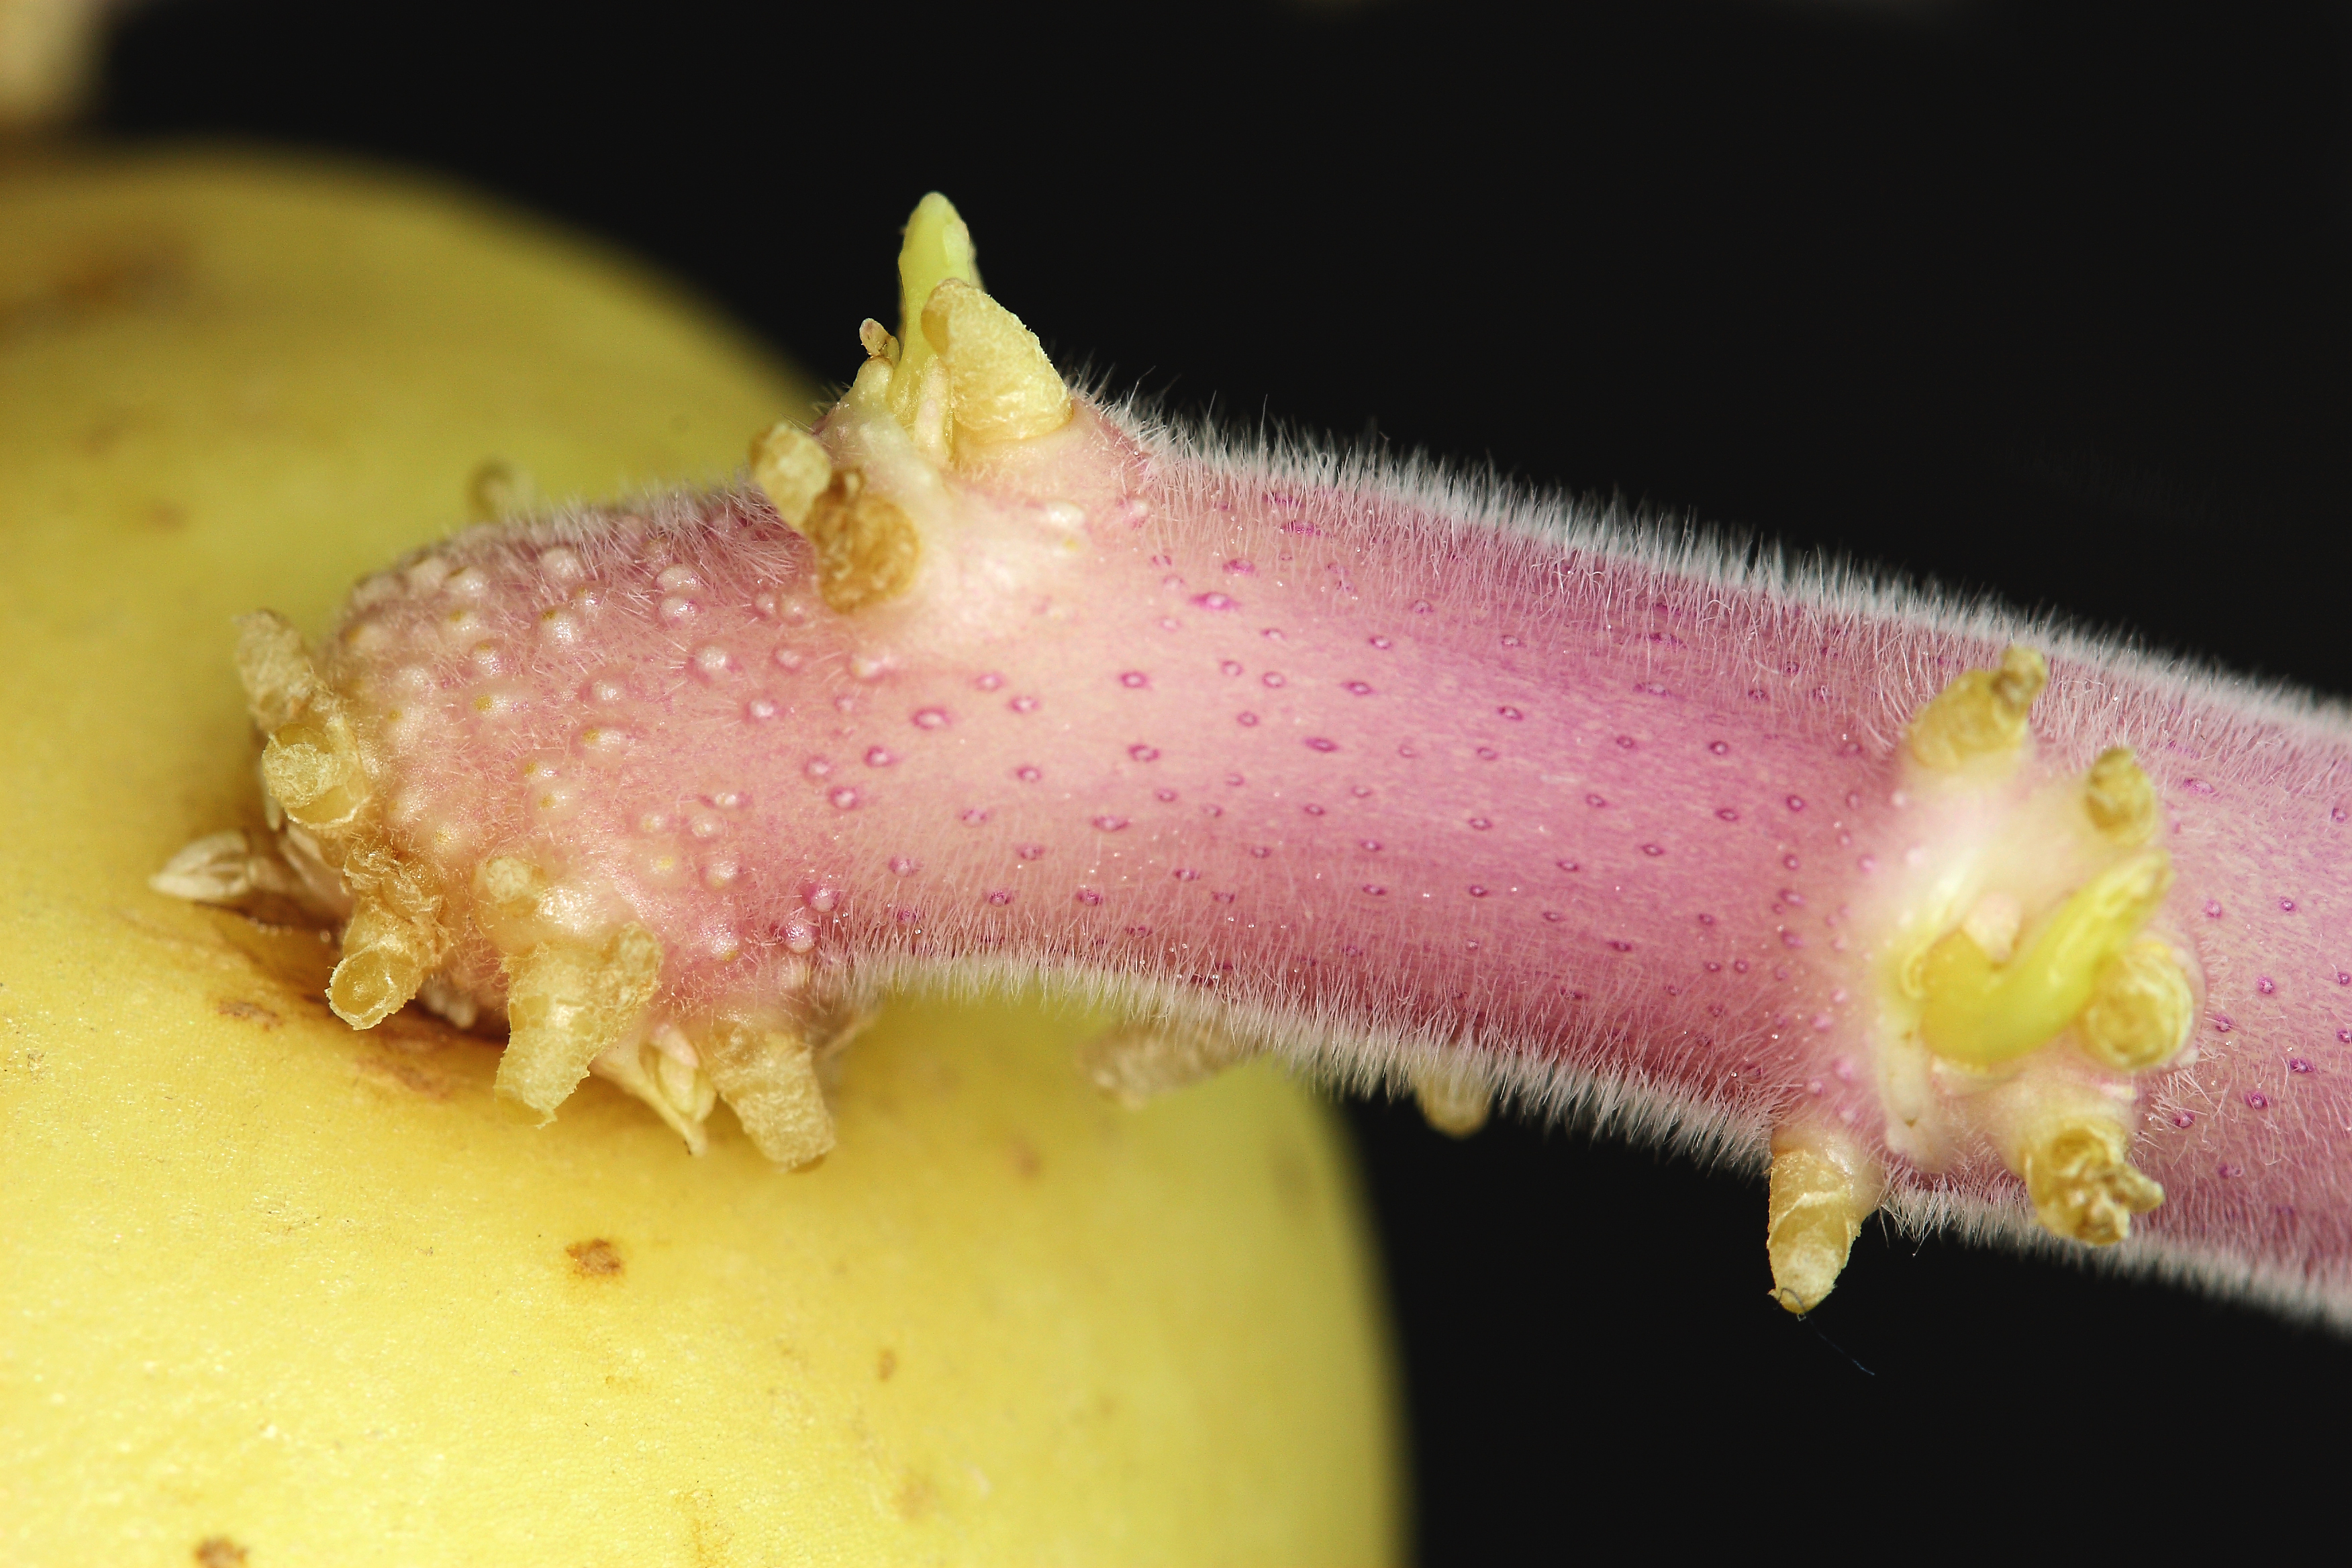 Sprouted Seed Potato. Image WikiMedia Commons